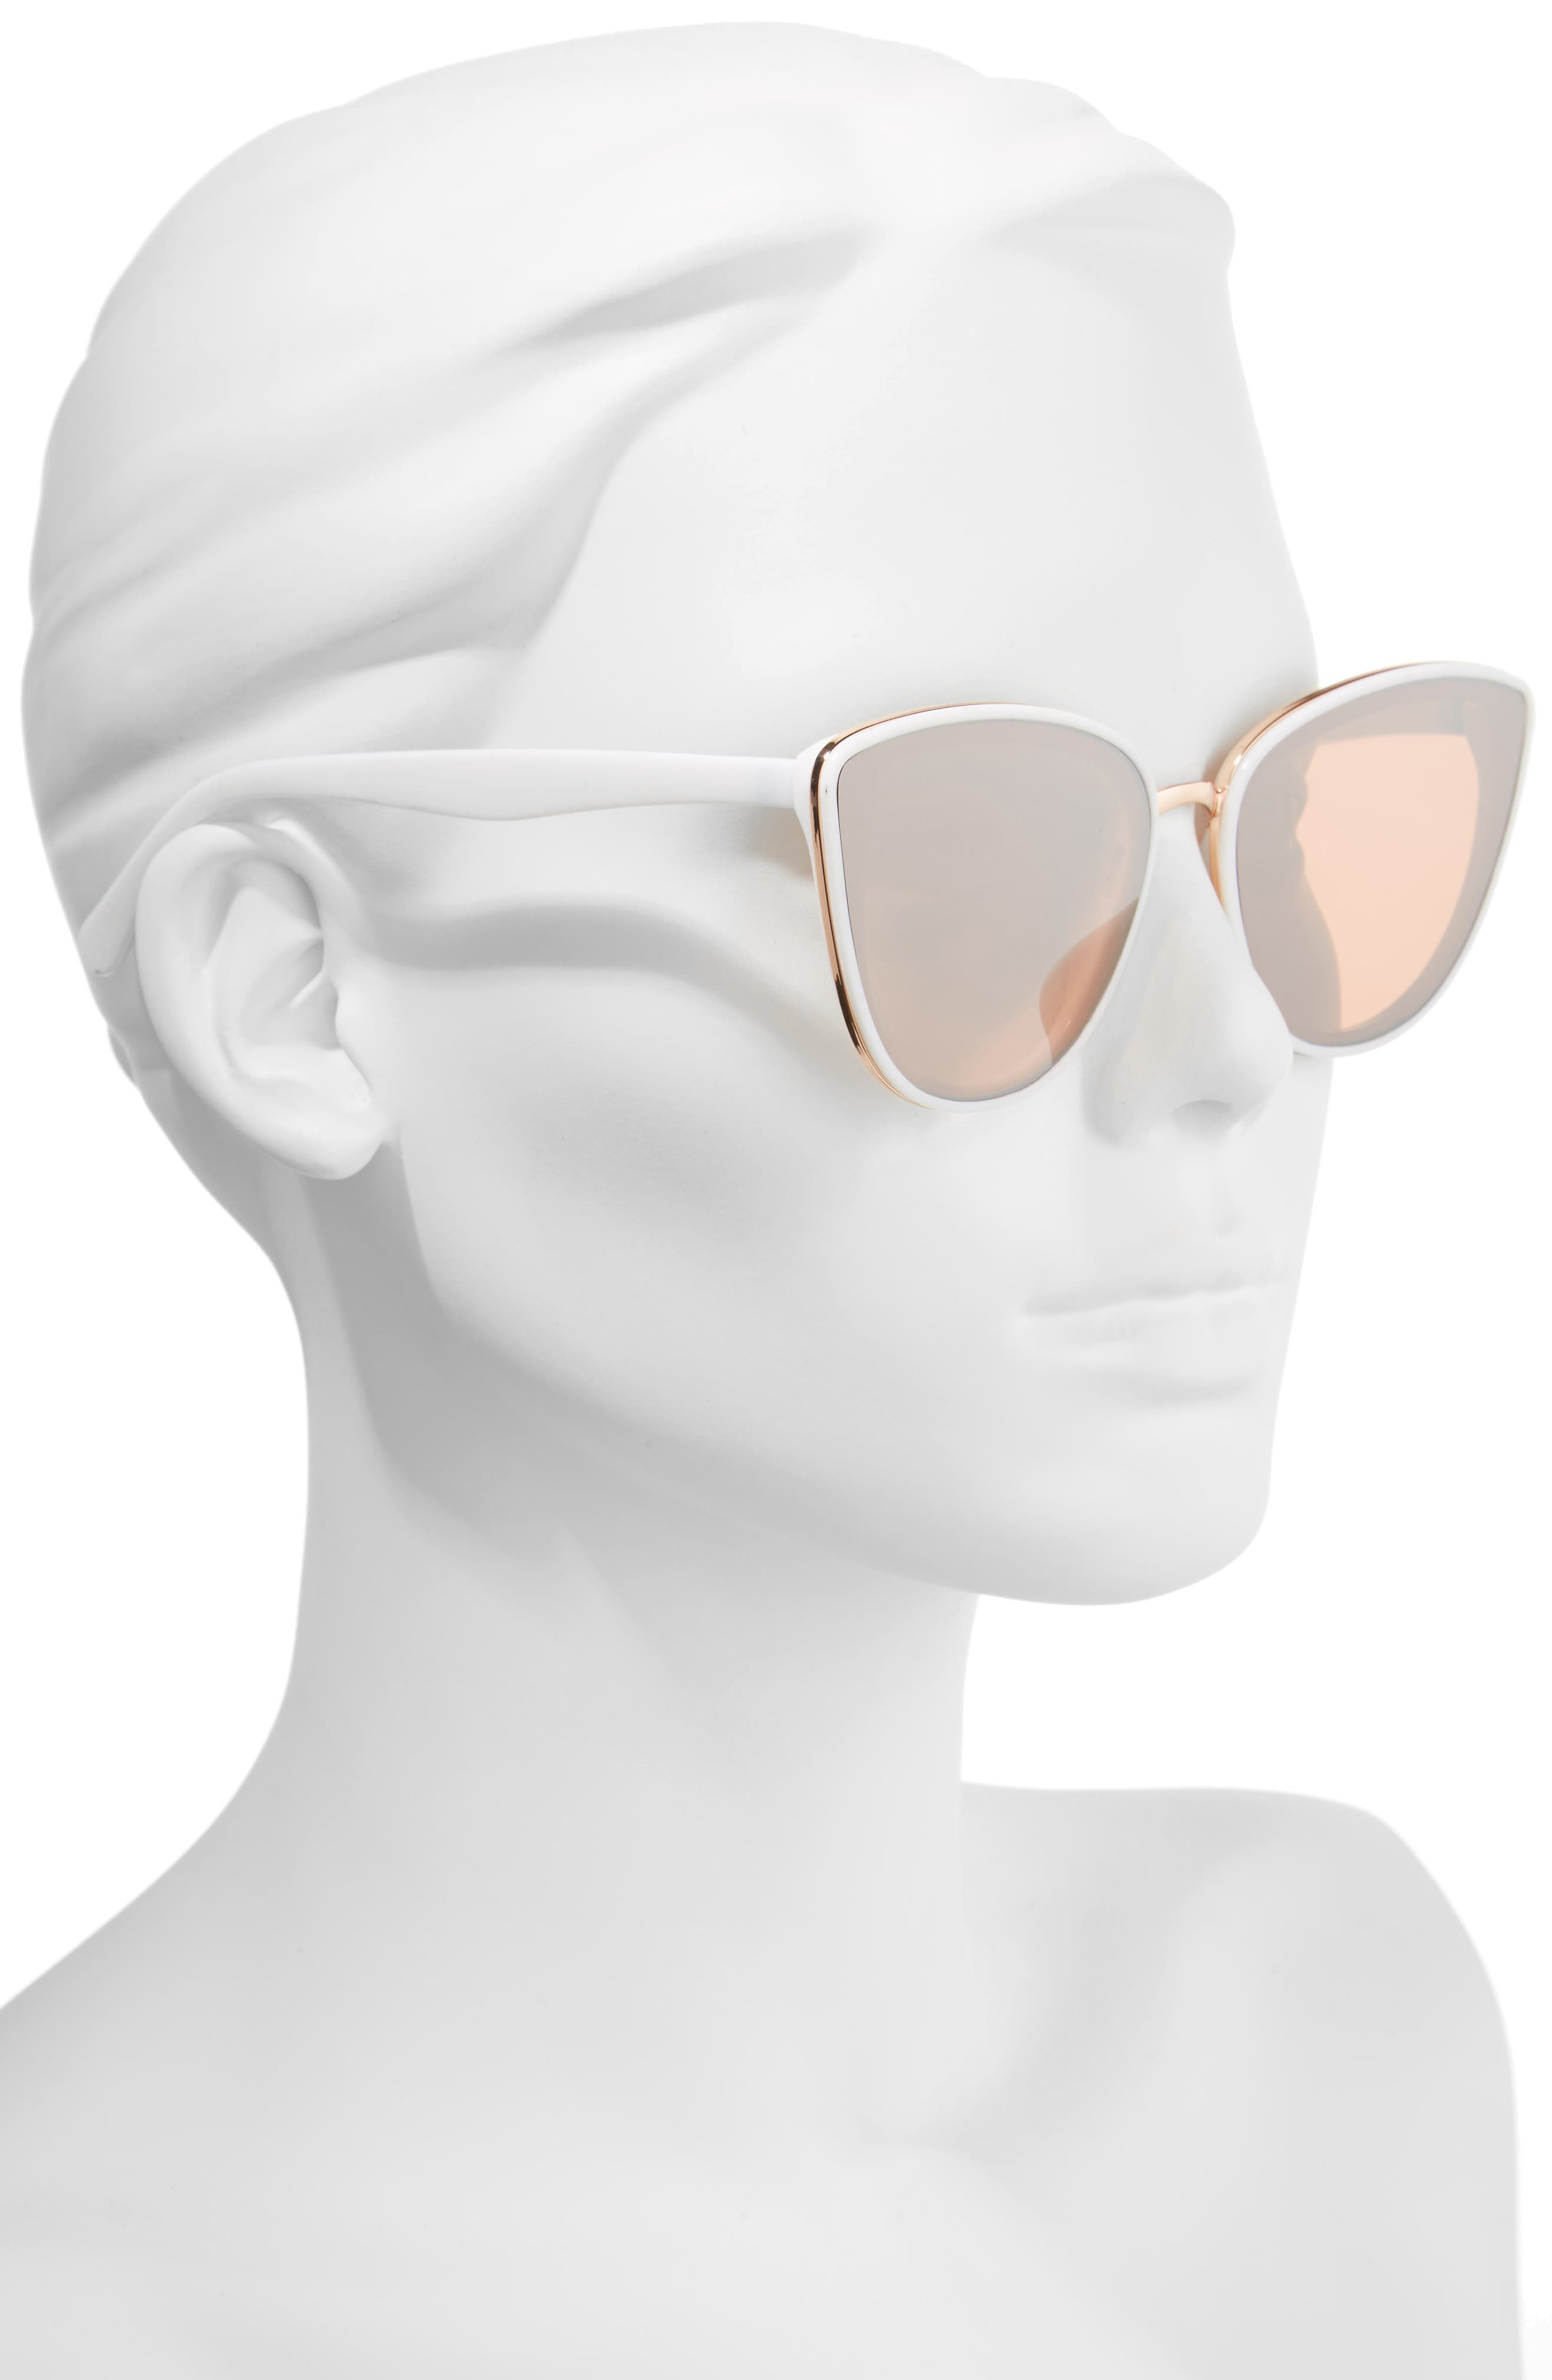 59mm Perfect Cat Eye Sunglasses,                             Alternate thumbnail 2, color,                             WHITE/ ROSE GOLD